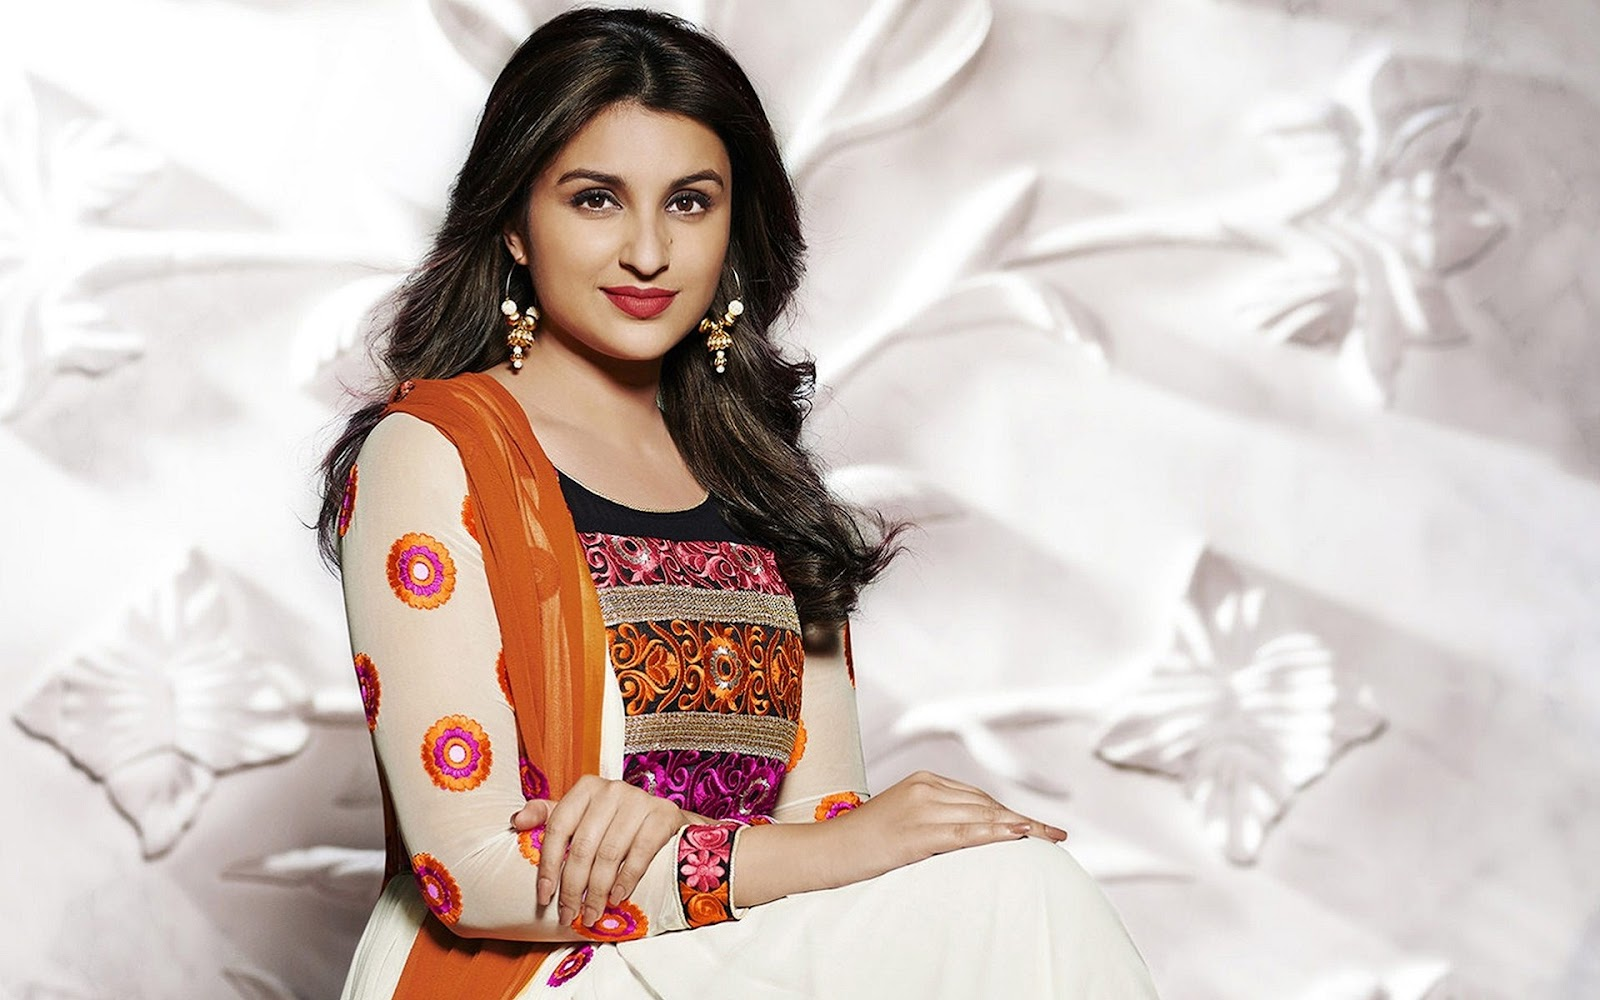 Parineeti Chopra Beautiful Hot And Sexy Hd Wallpaper -1655